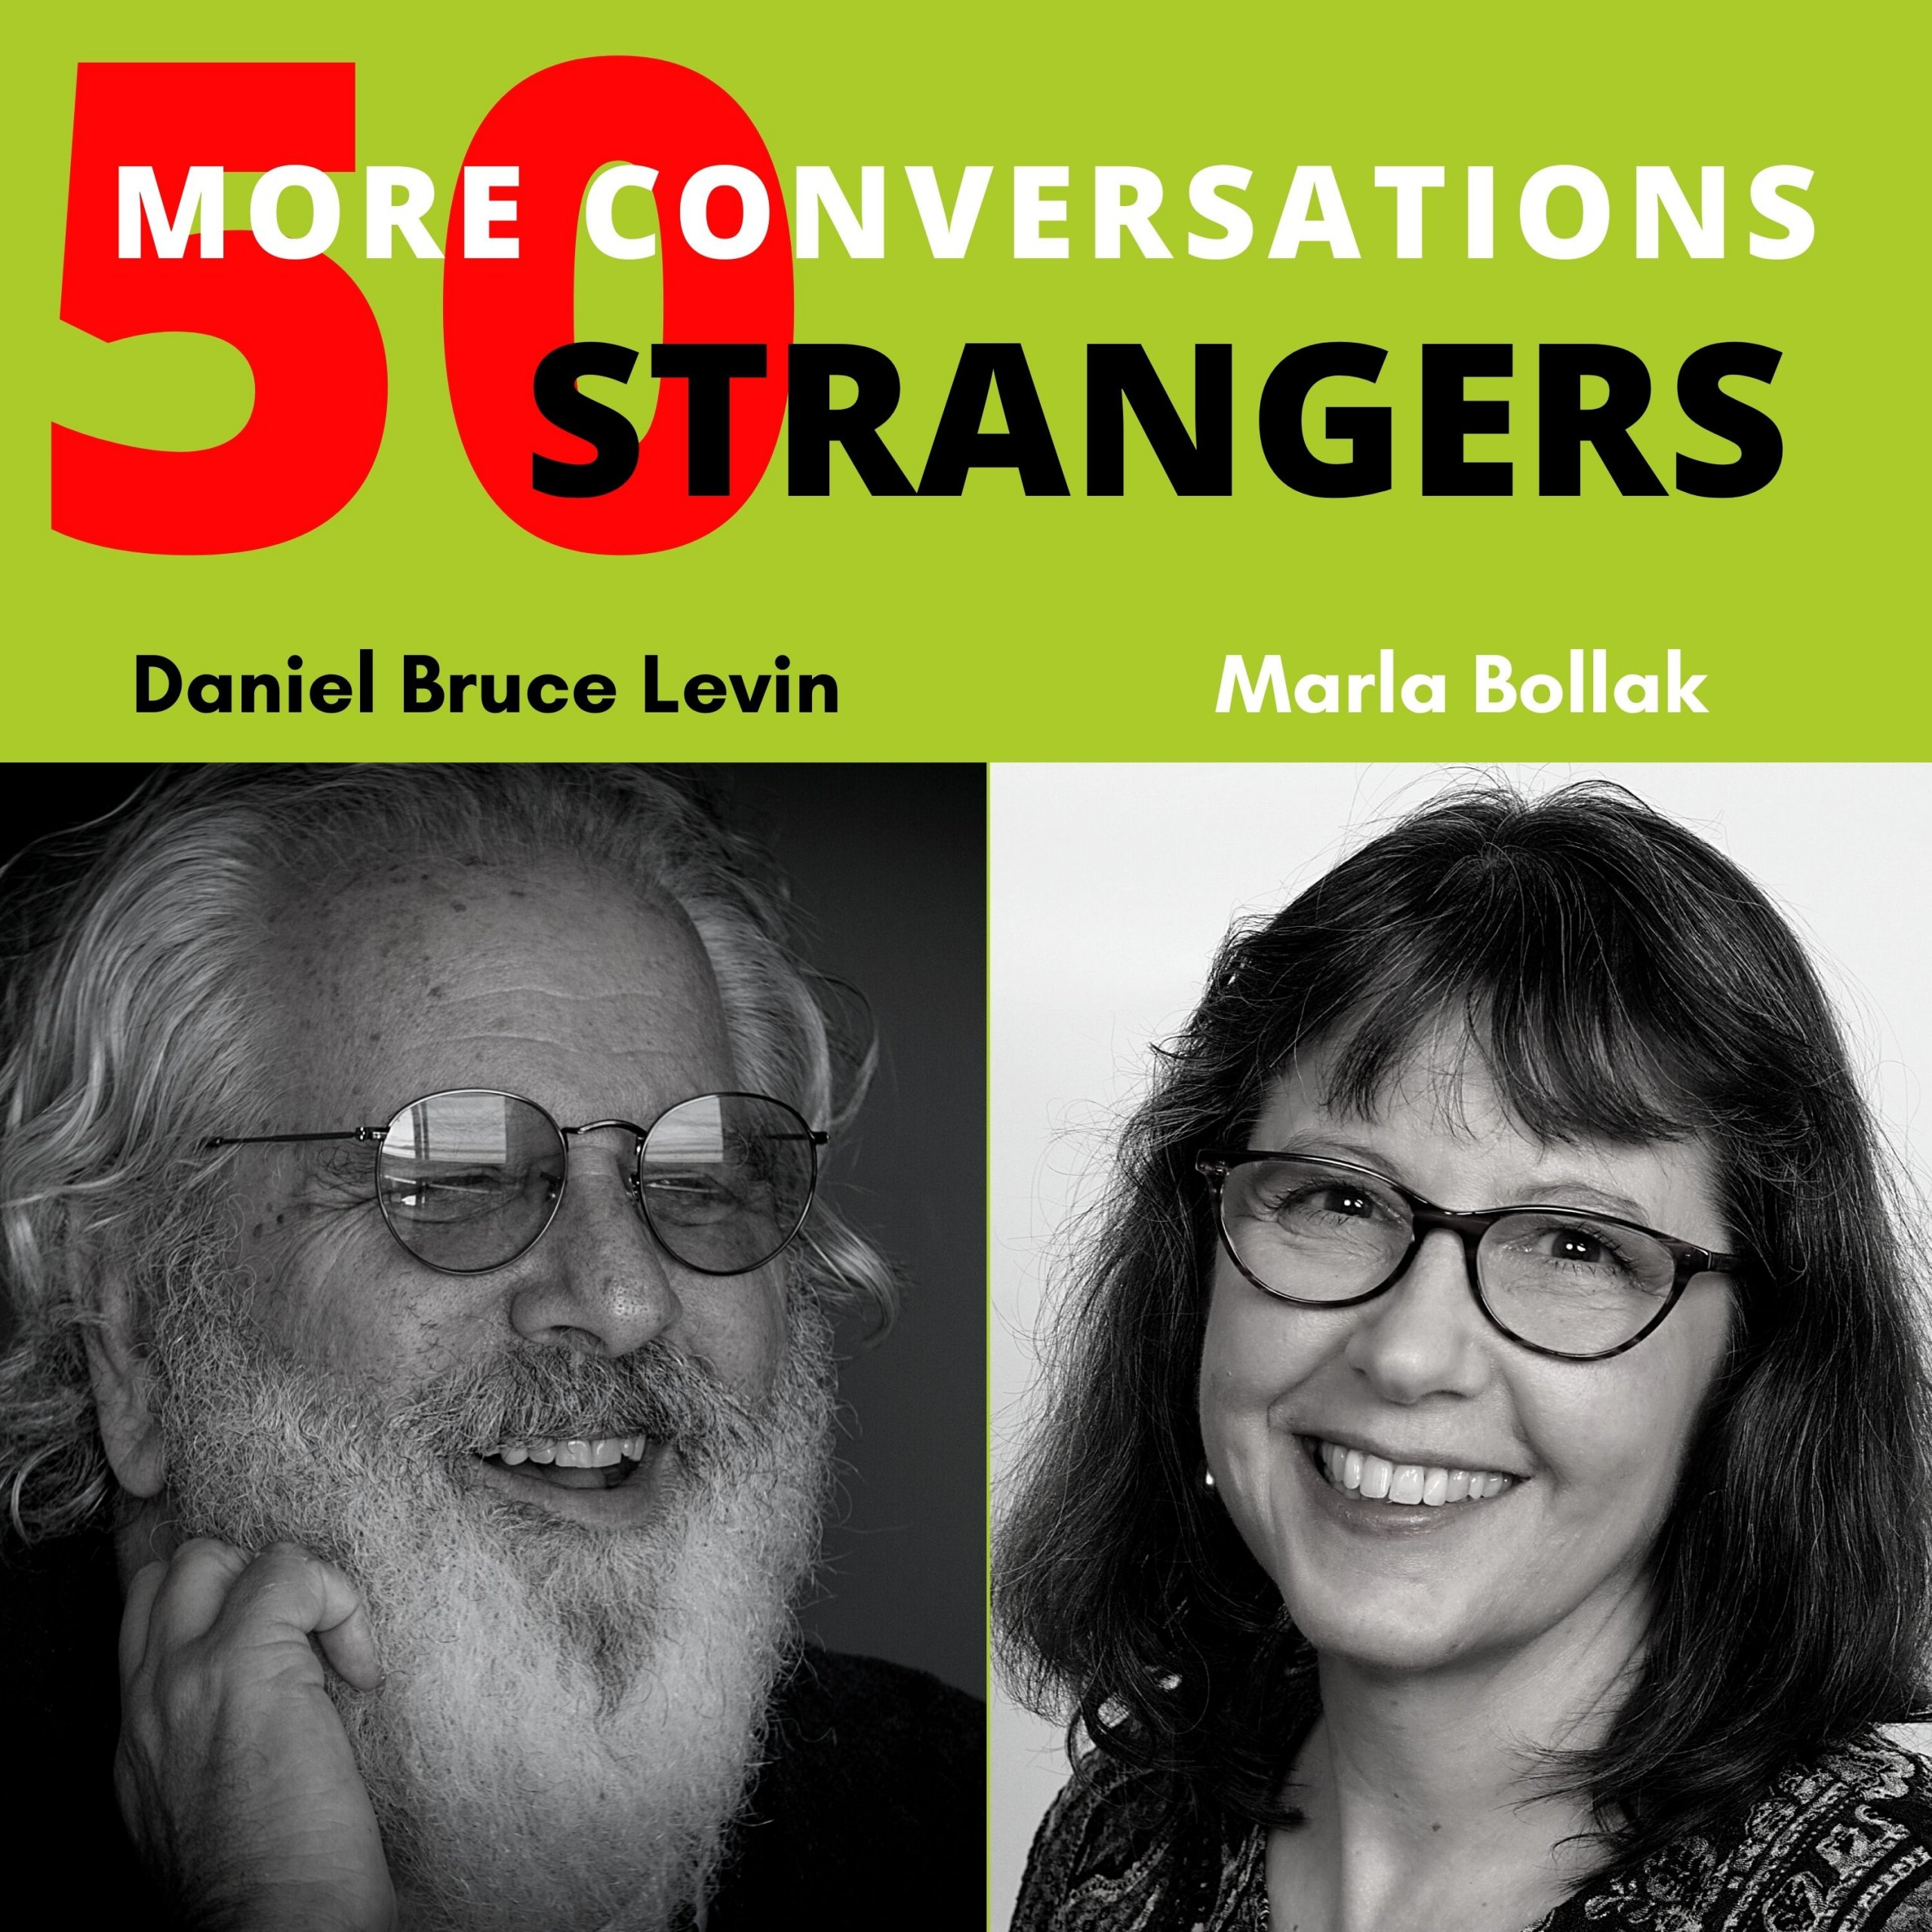 50 More Conversations with 50 More Strangers with Marla Bollak